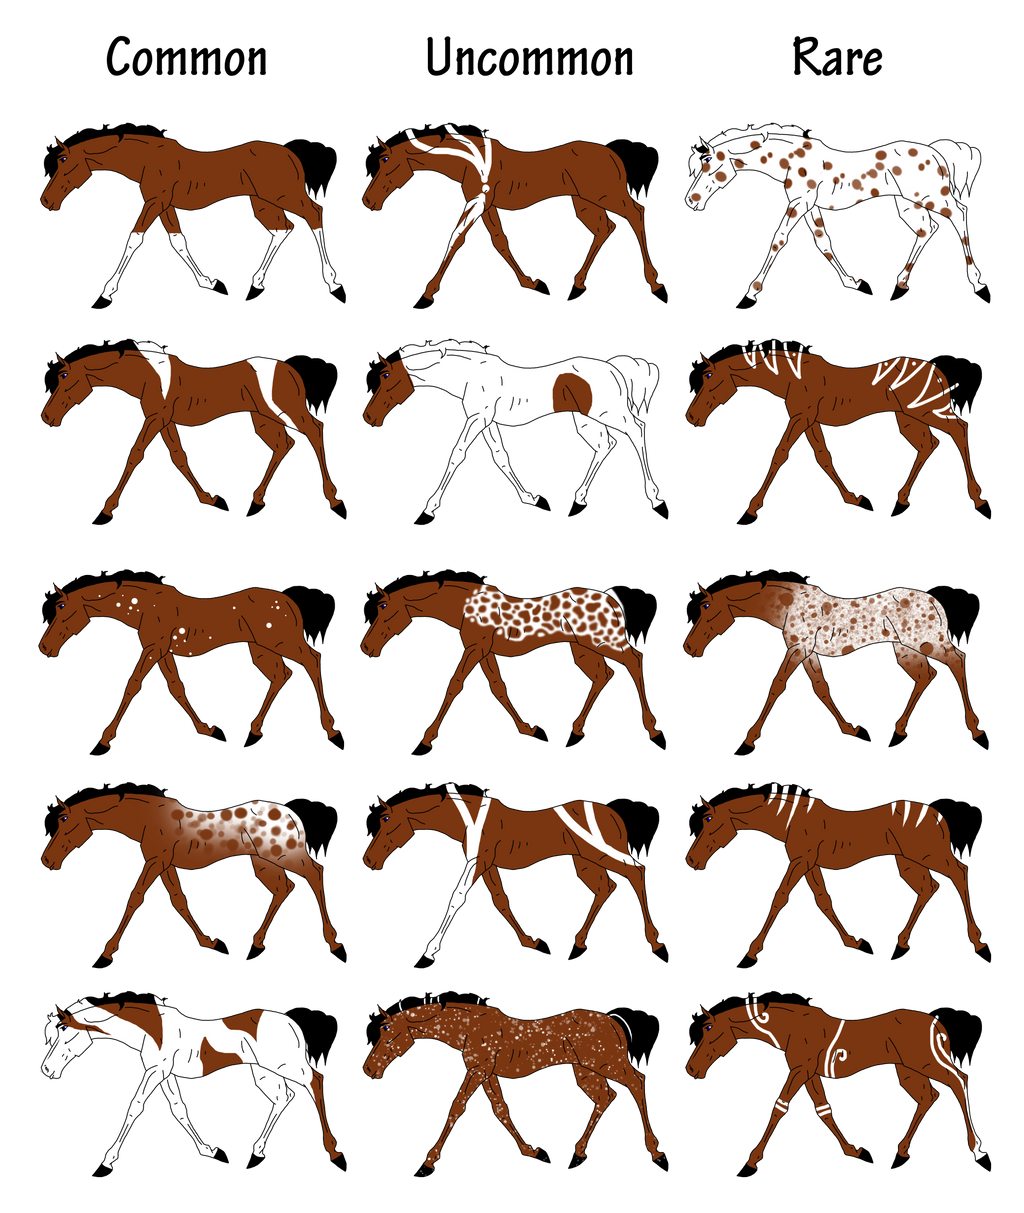 Horse coat colors and markings - photo#2